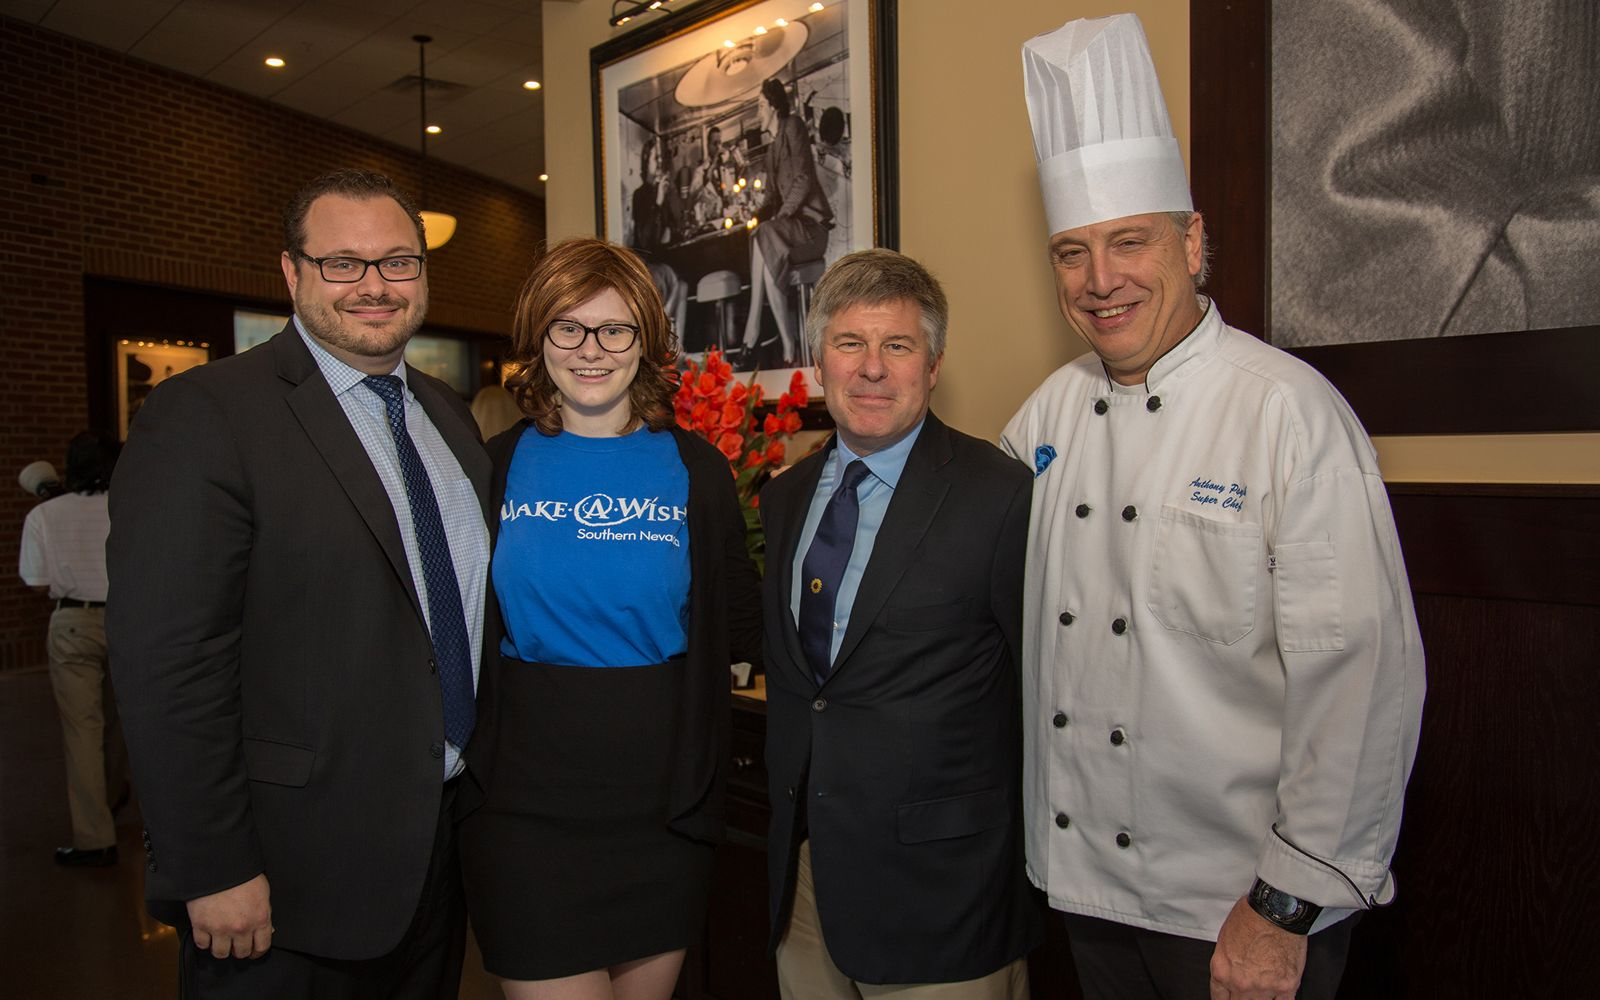 Maggiano's Donates More Than $700,000 to Make-A-Wish